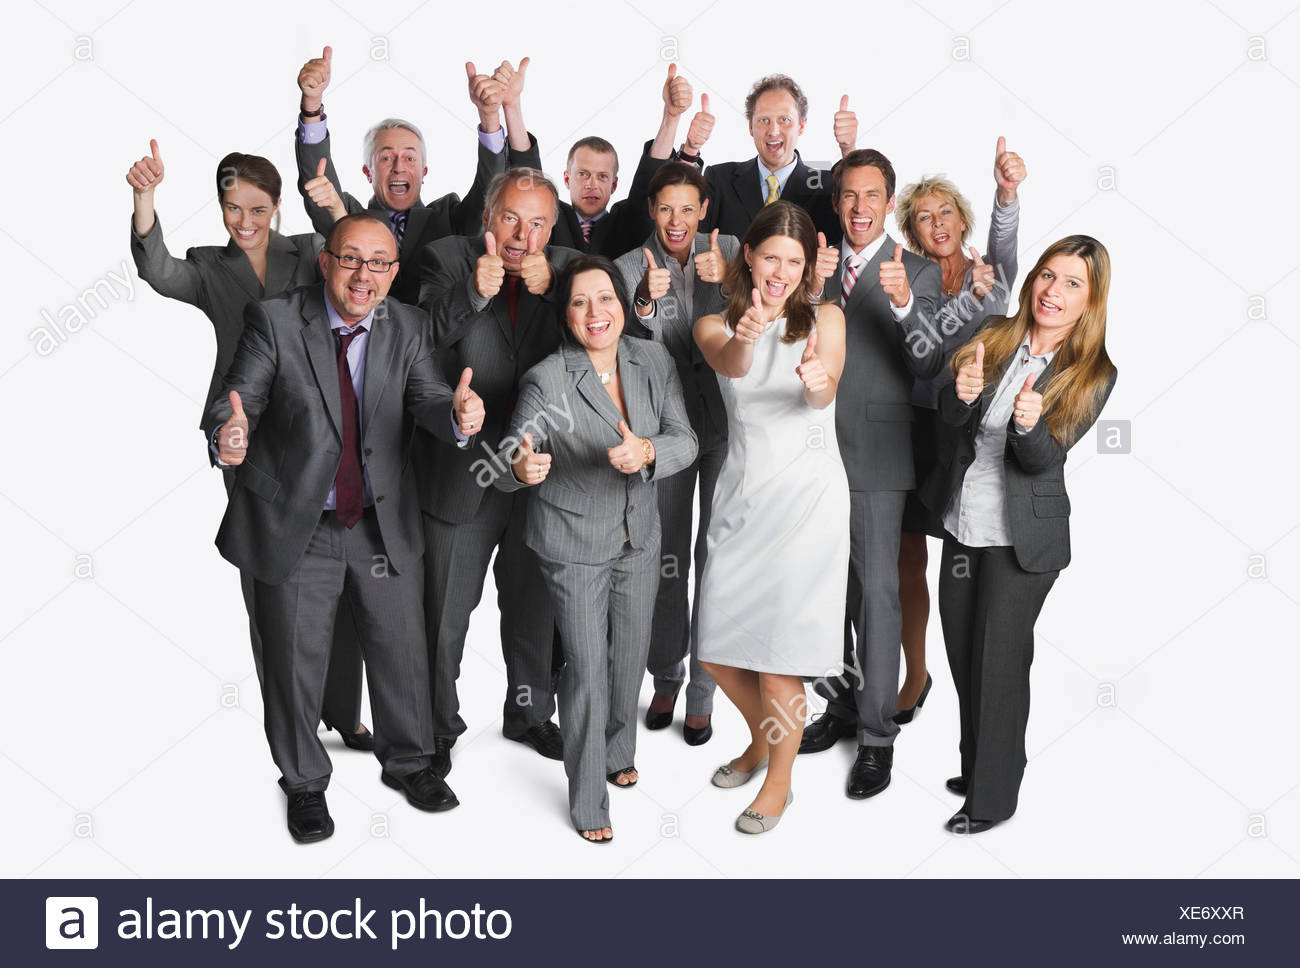 Large group of business people showing thumbs up against white background - Stock Image